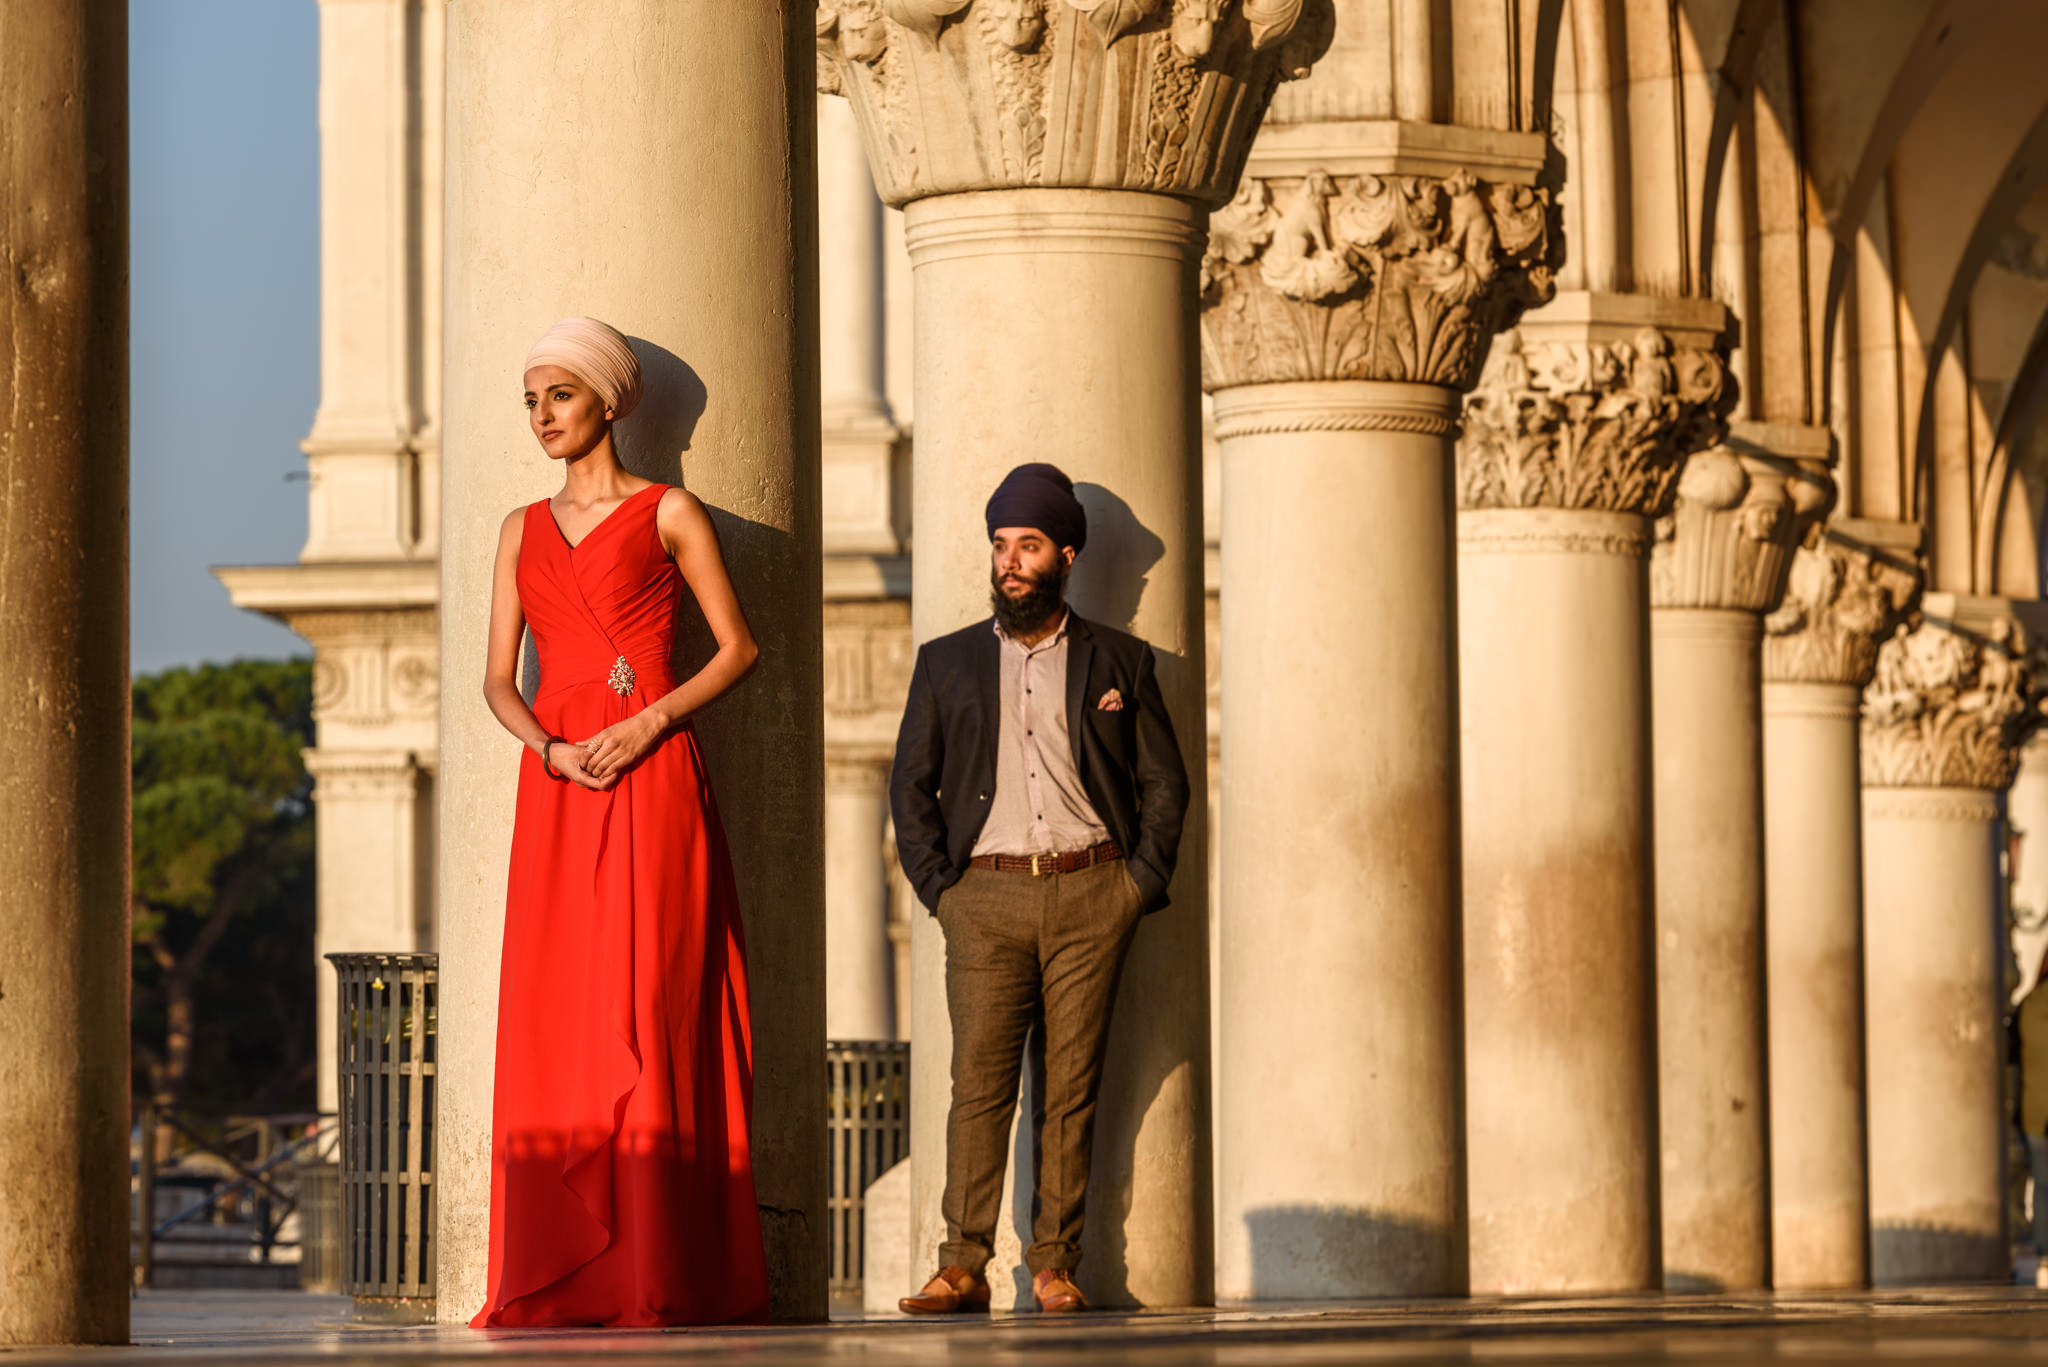 destination pre wedding shoot italy sikh wedding photography-22.jpg